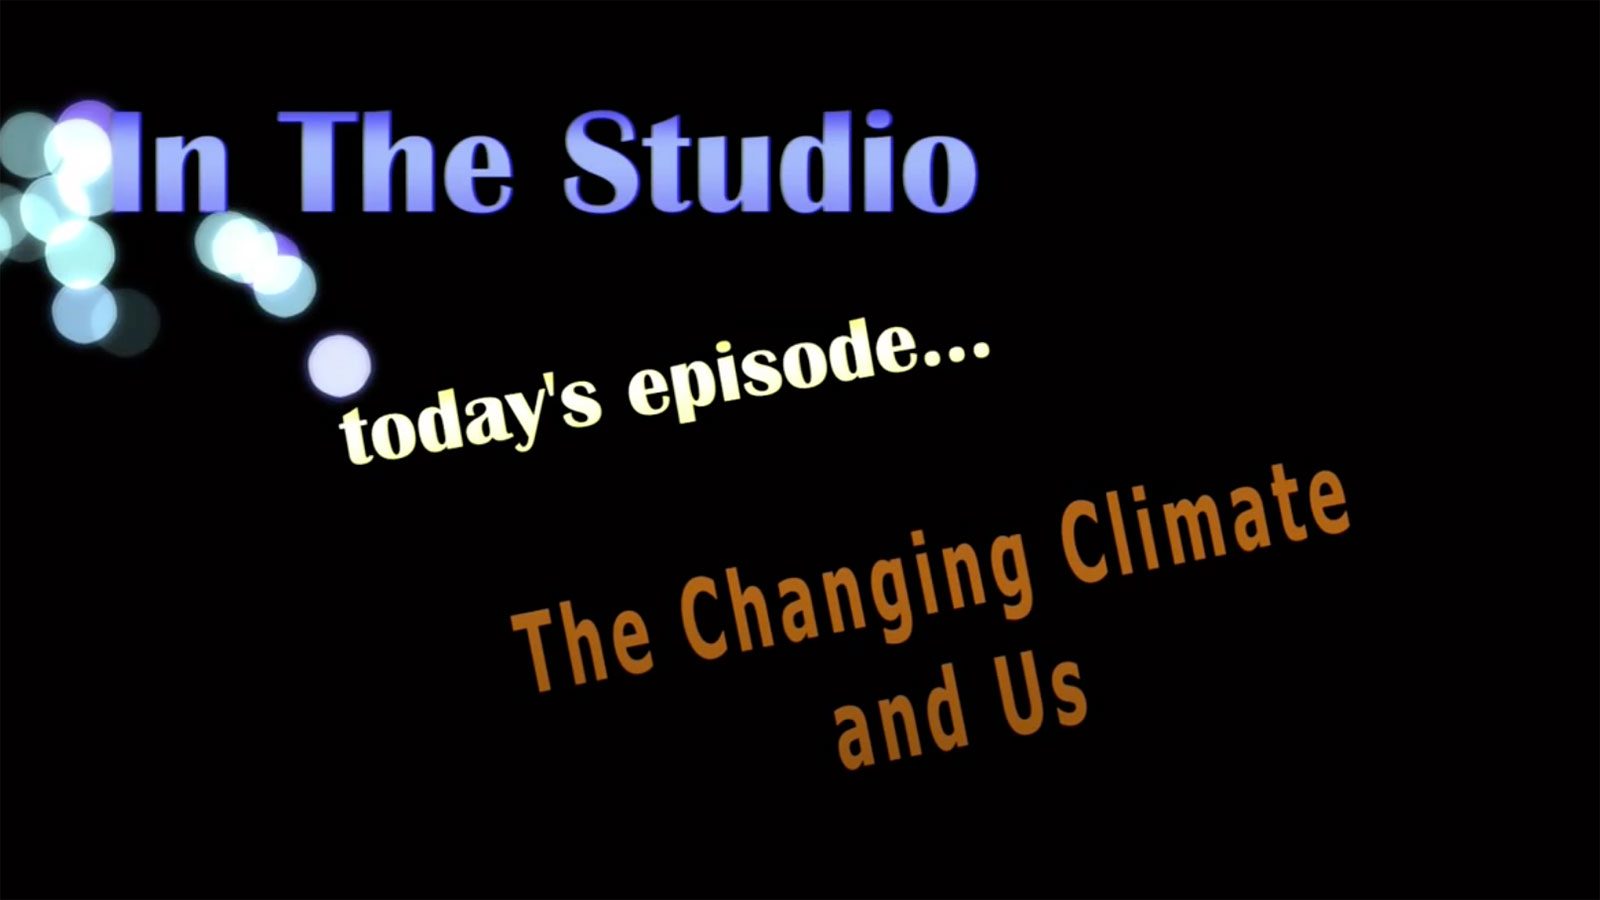 In the Studio: The Changing Climate and Us